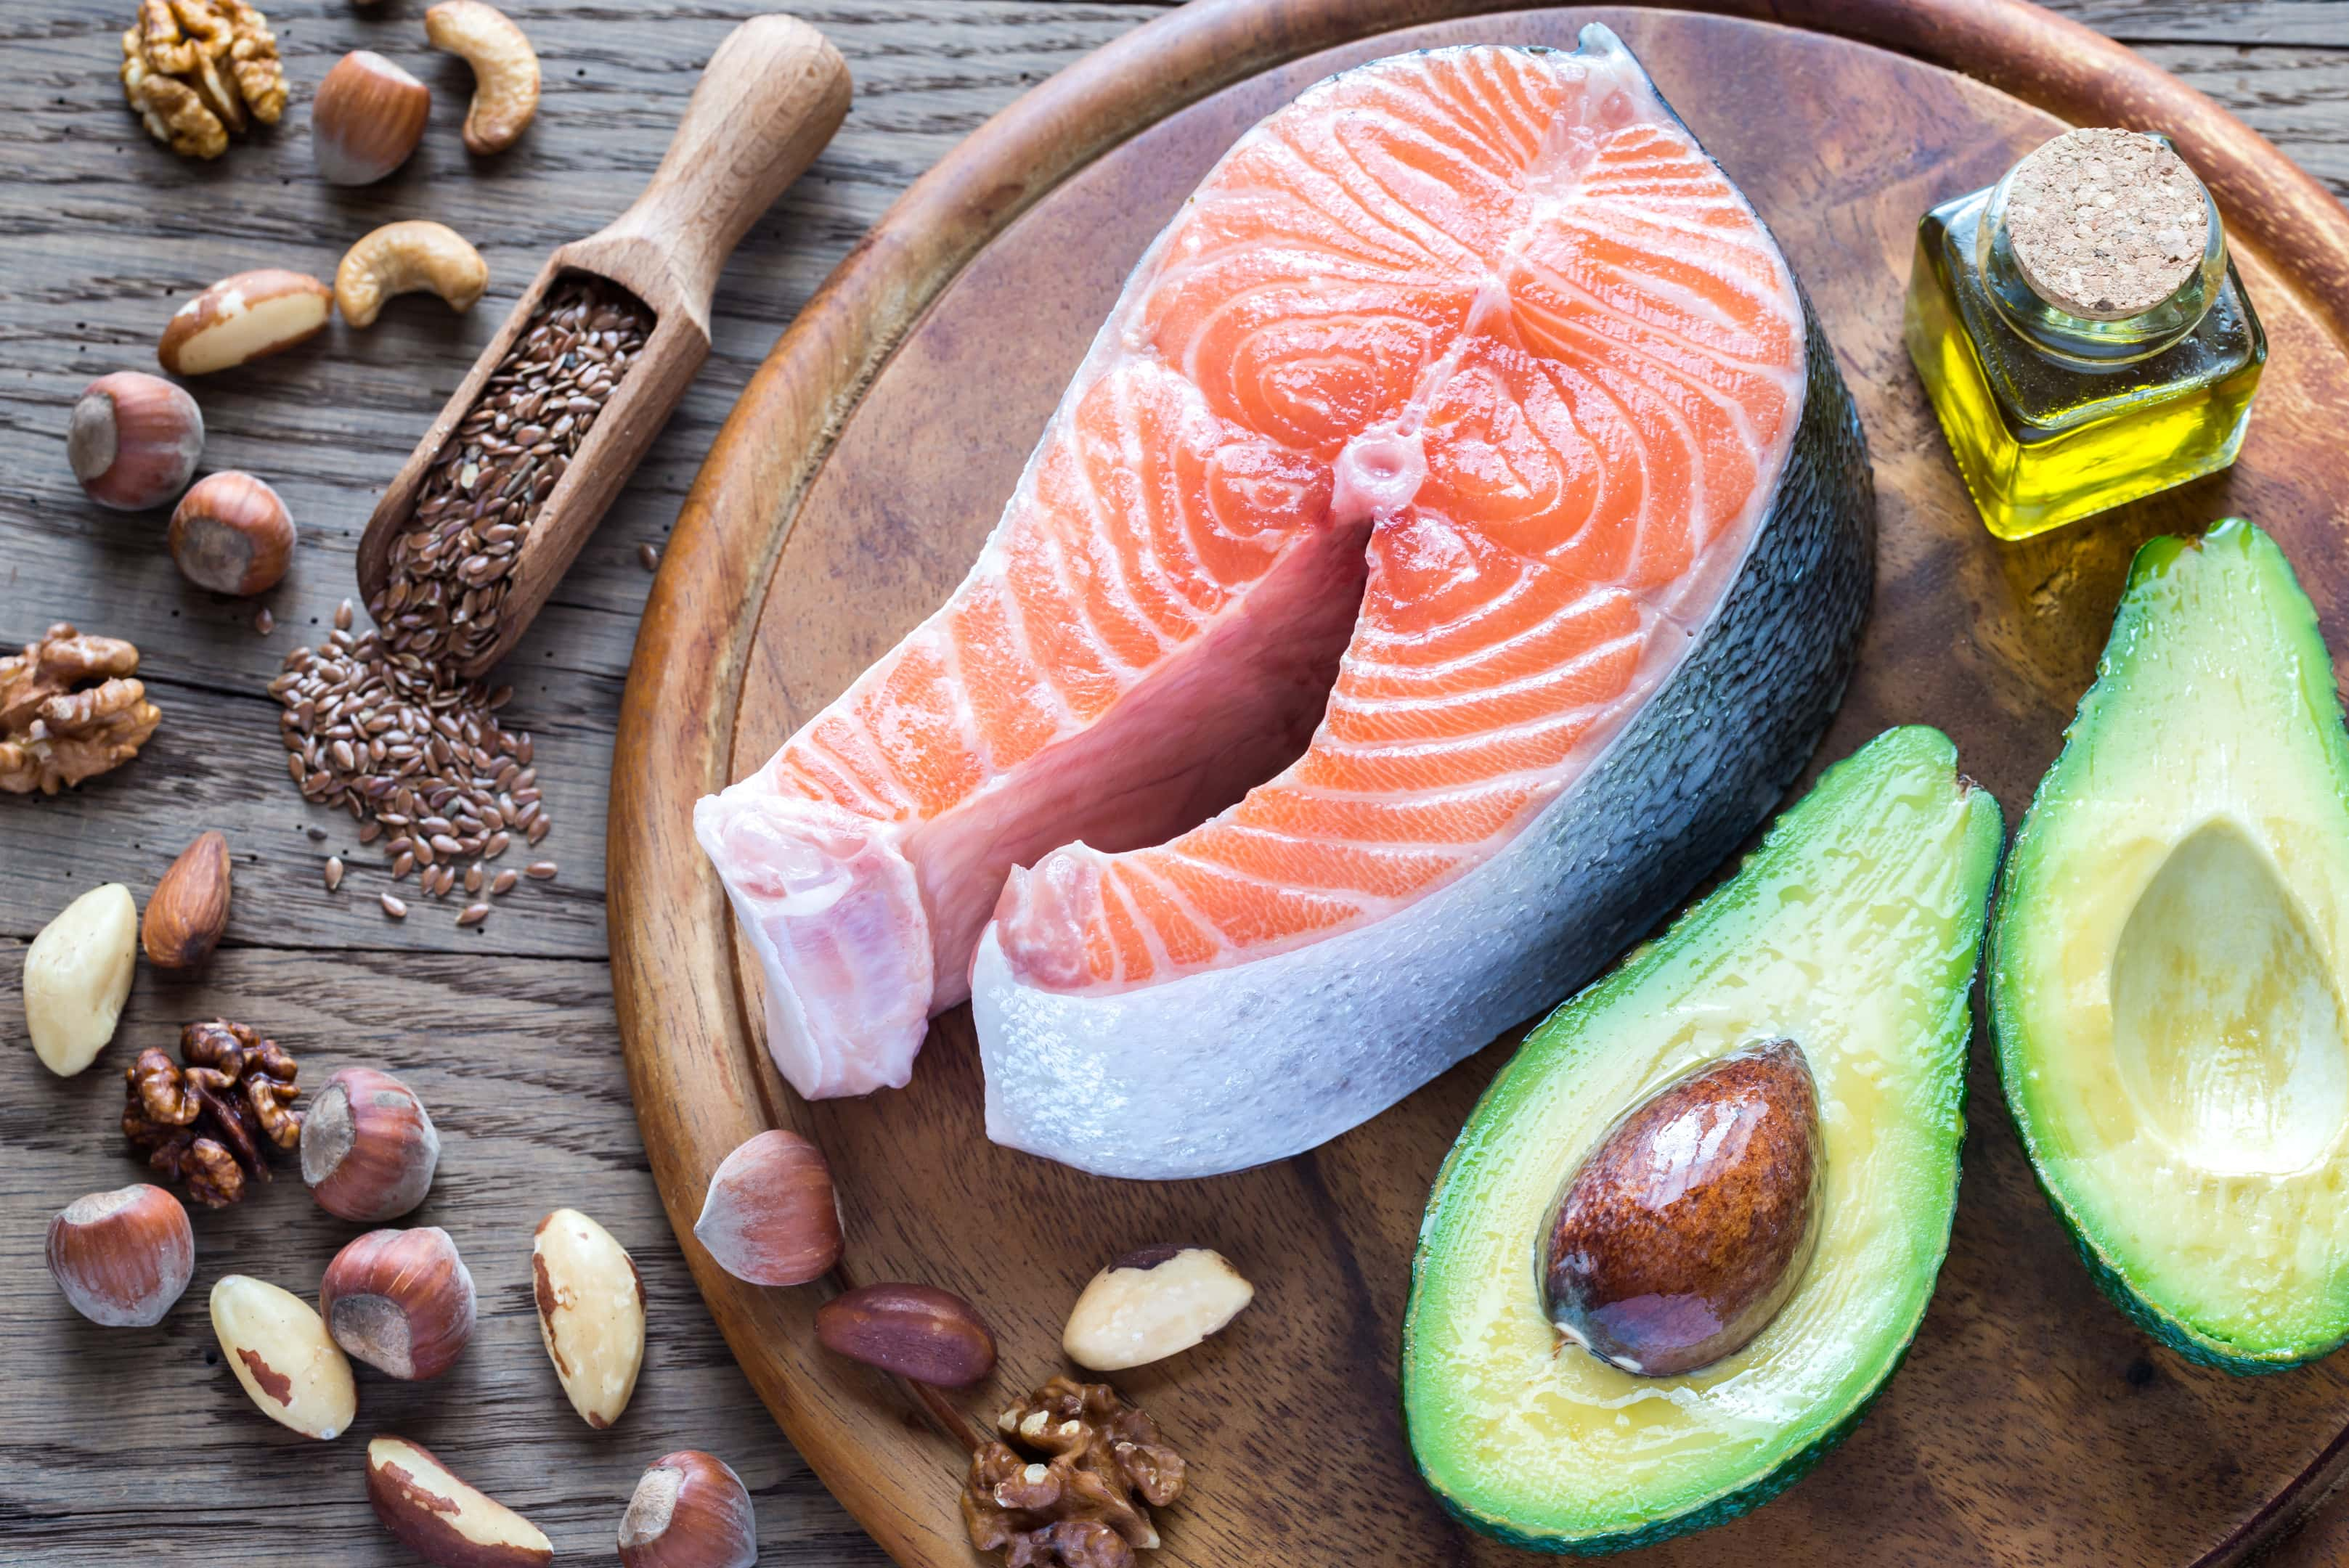 Salmon avocado and flex foods high omega-3 fats